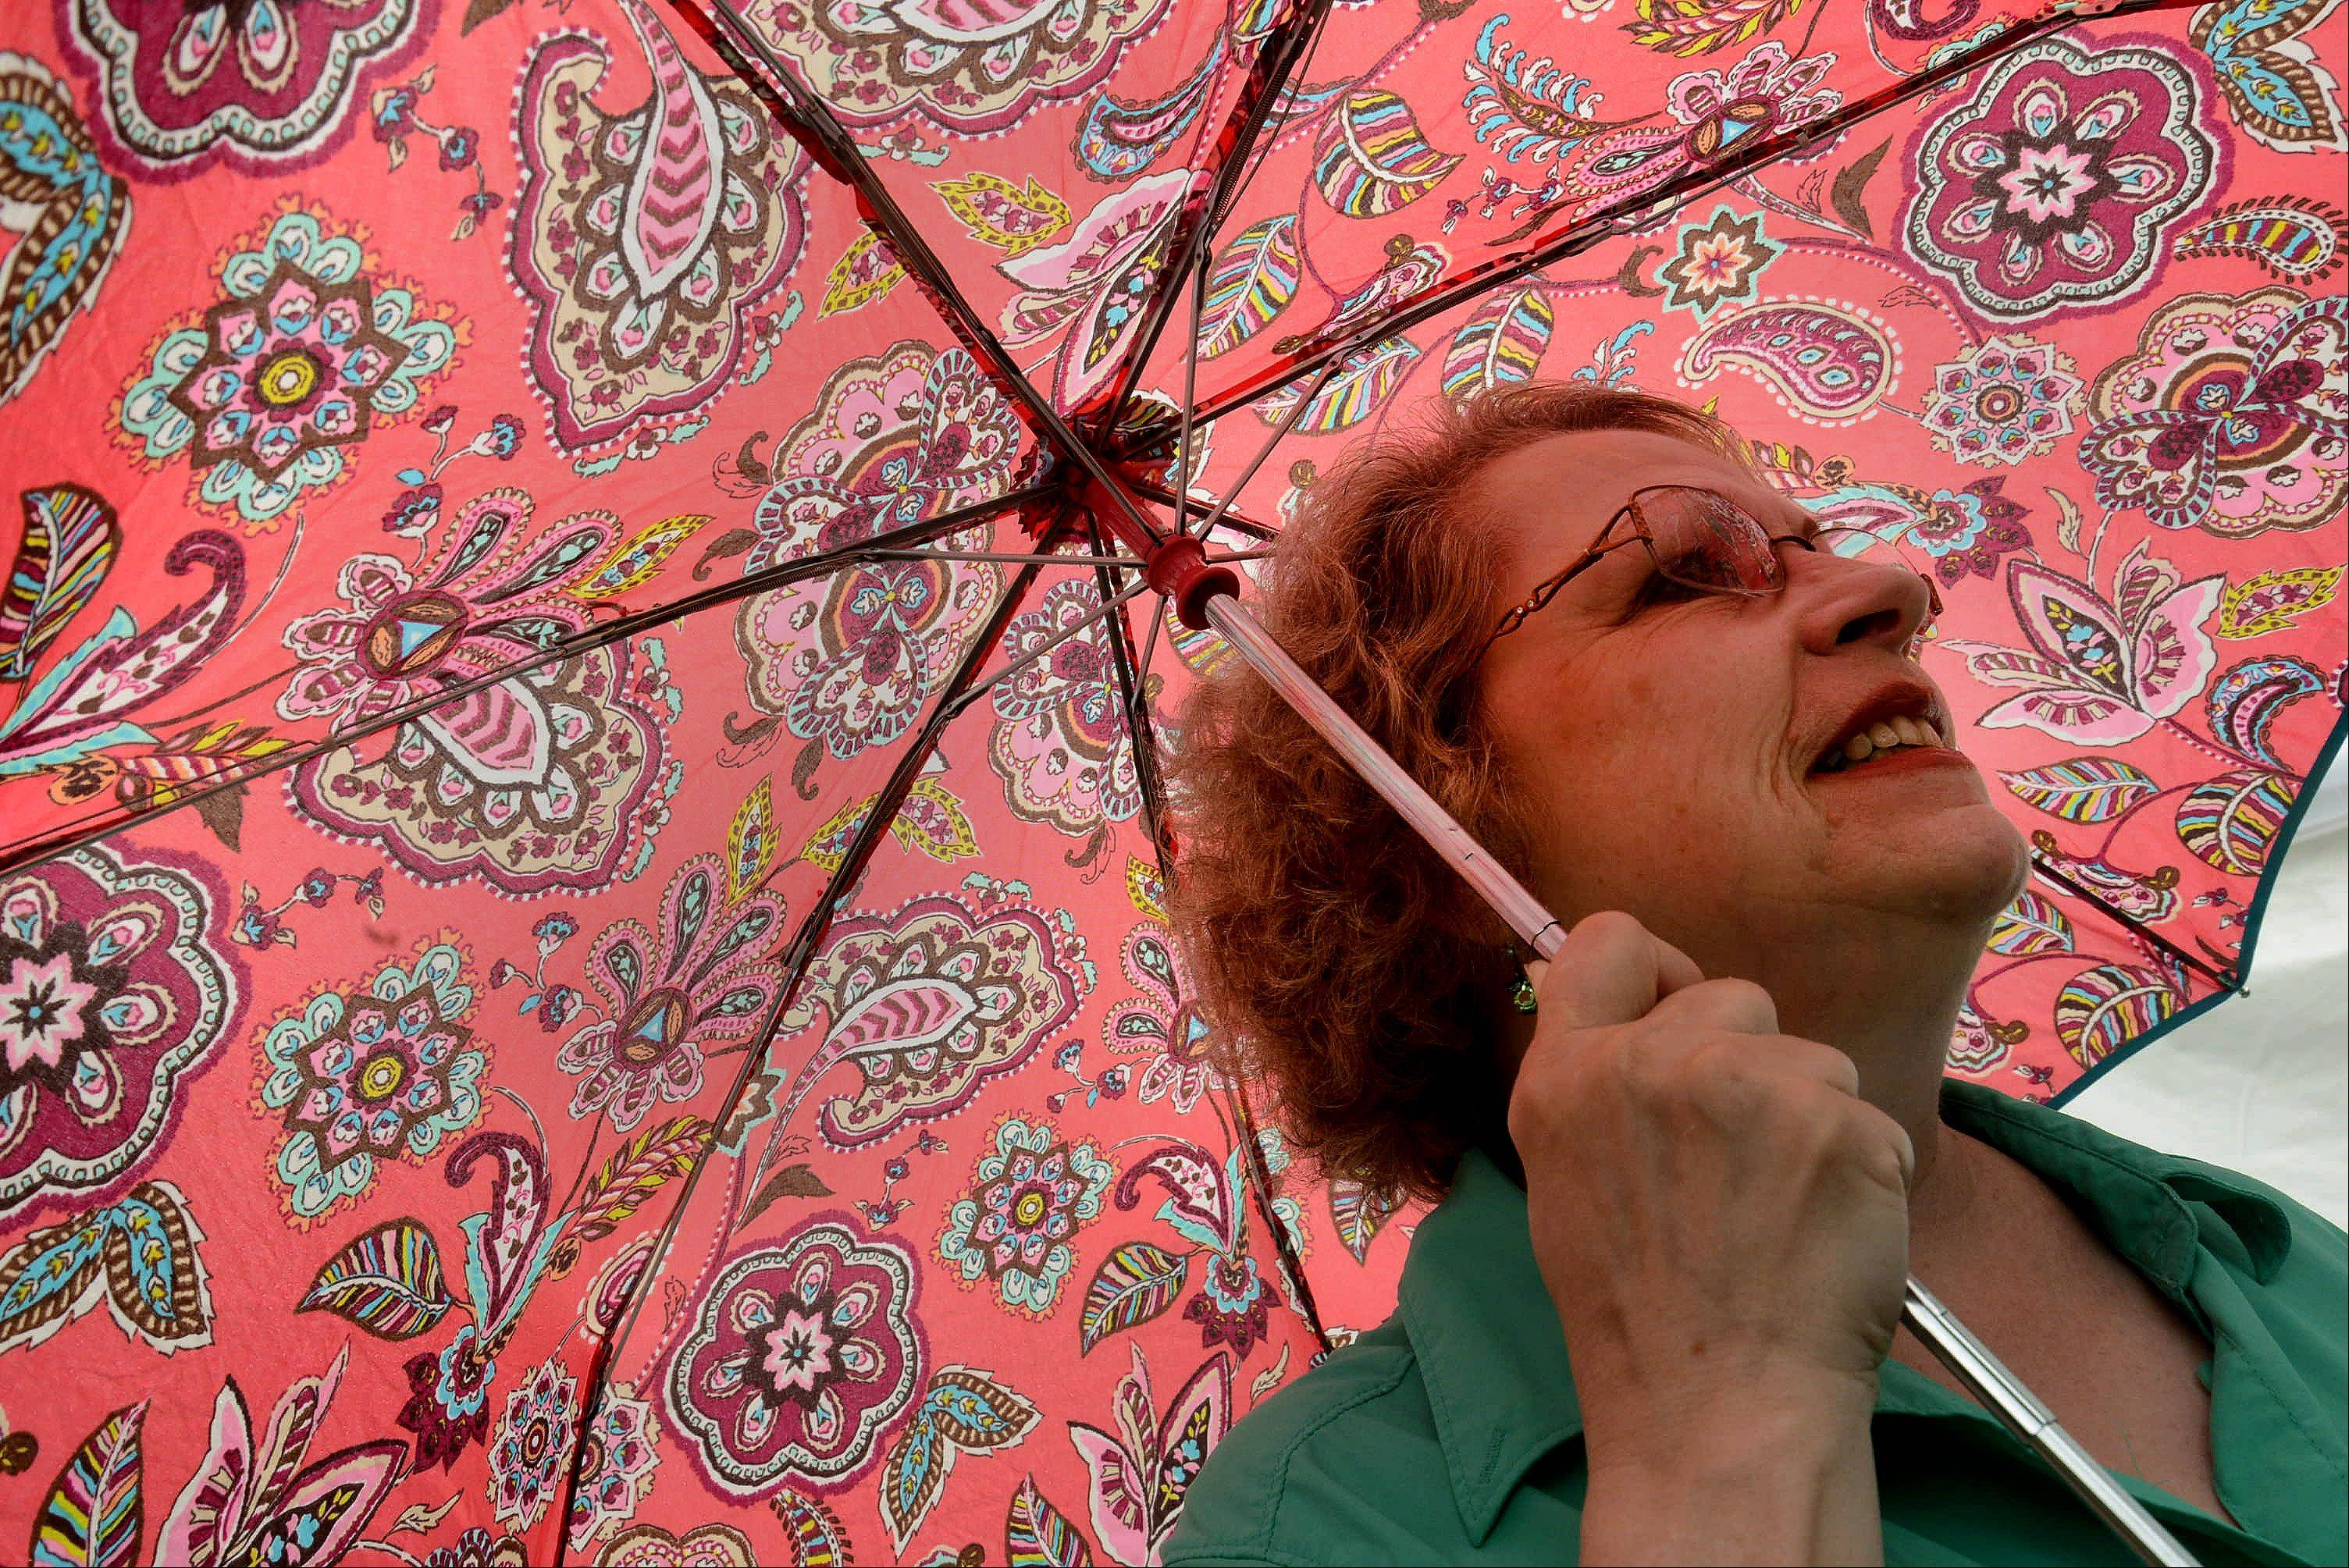 Joyce Mule of Grayslake sports a colorful umbrella to ward off the rain during the Grayslake Arts Festival.